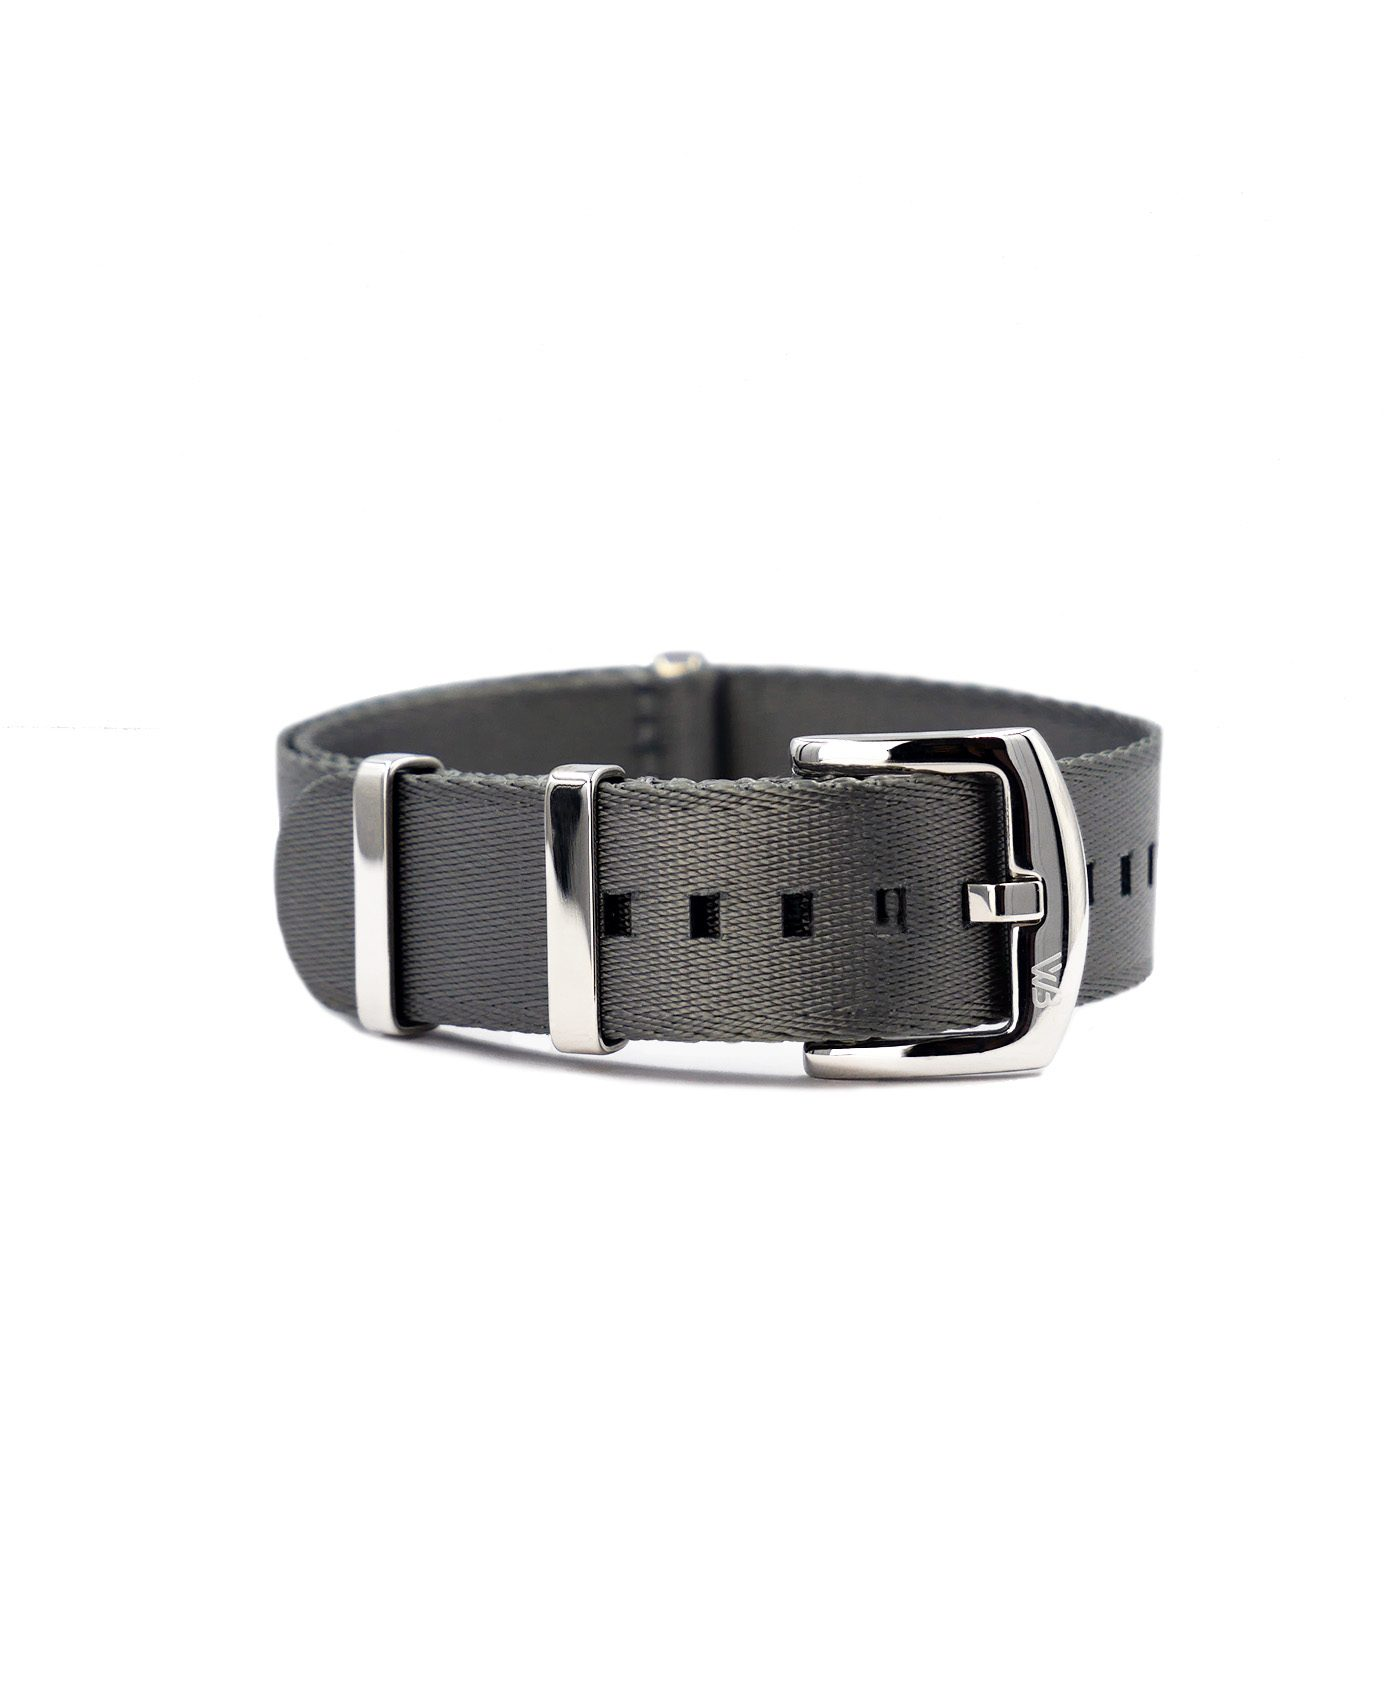 Premium 1.2 mm seat belt NATO Strap grey front by WatchBandit